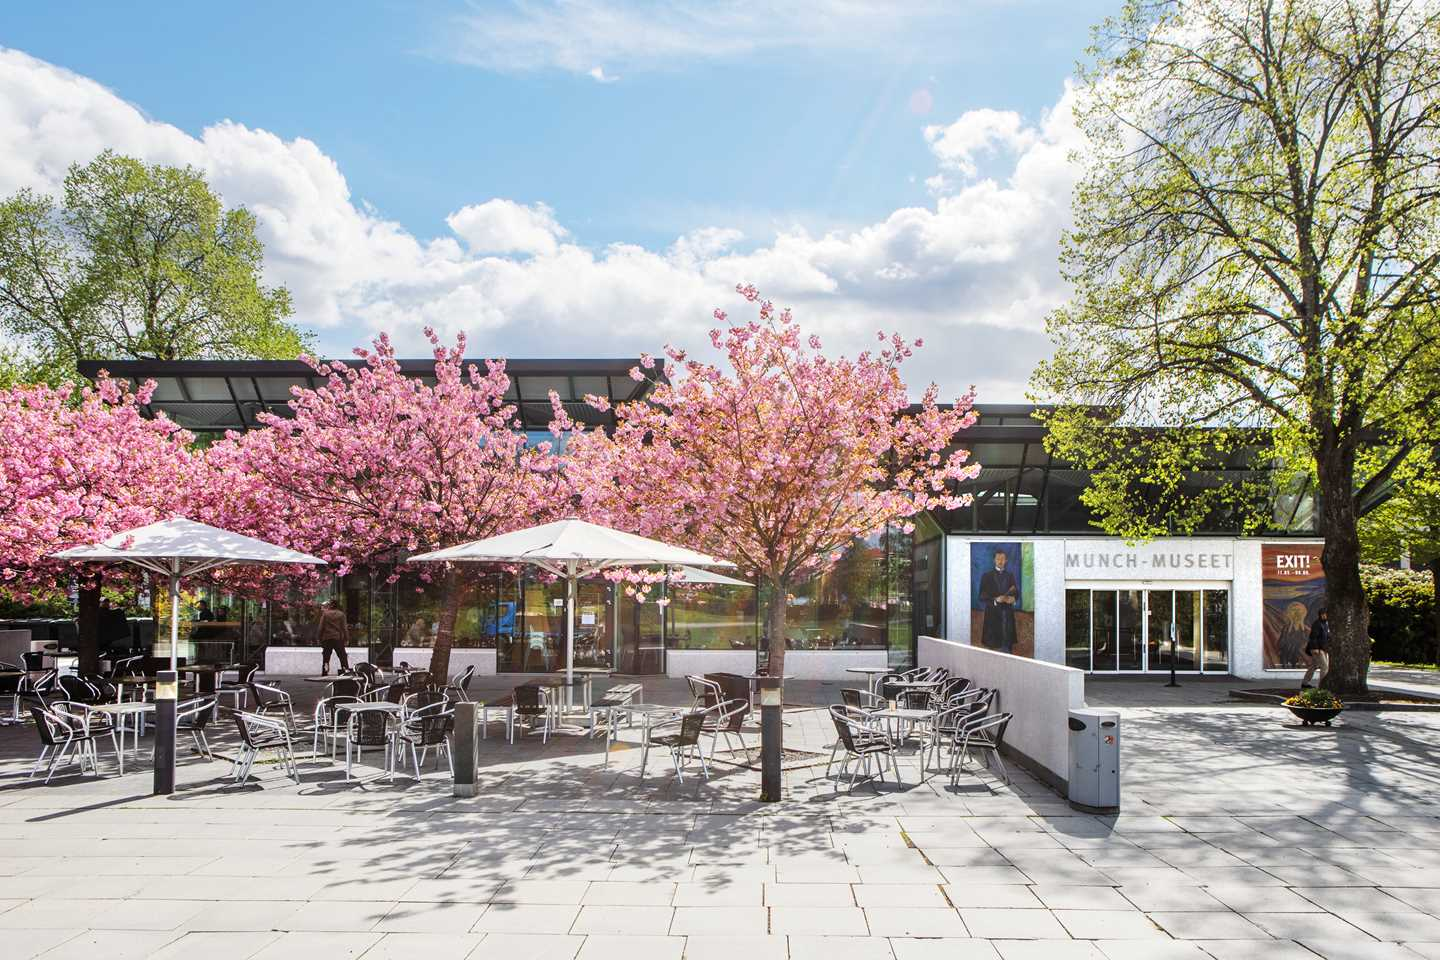 Munchmuseet at Tøyen in May 2019, with the new entrance section from 1994, and the beautiful Japanese cherry trees by the café's outdoor seating area. Photo @ Munchmuseet